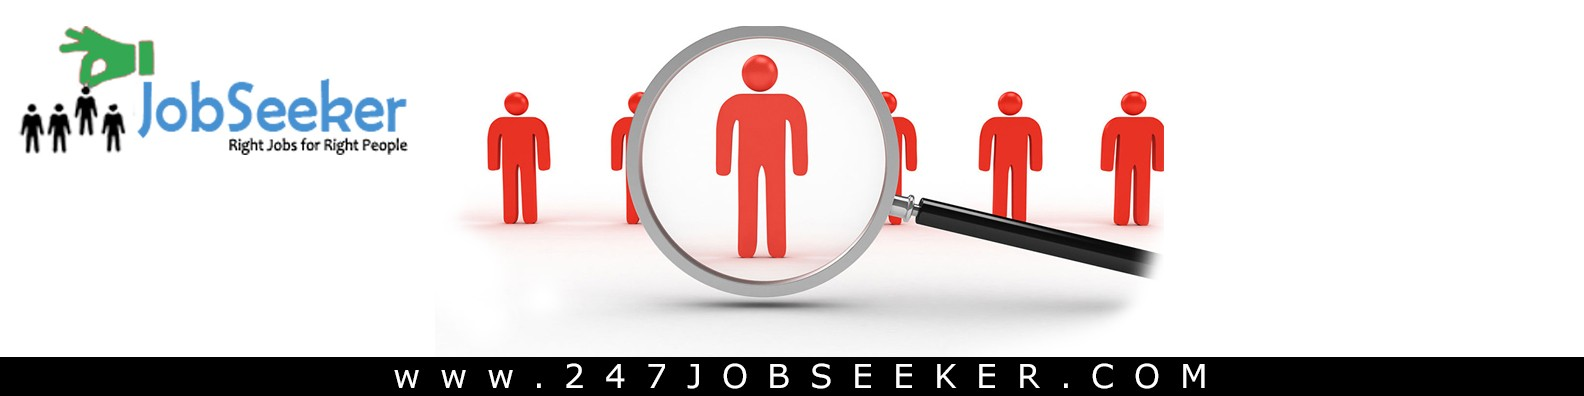 247JobSeeker com - Right Jobs for Right People | LinkedIn